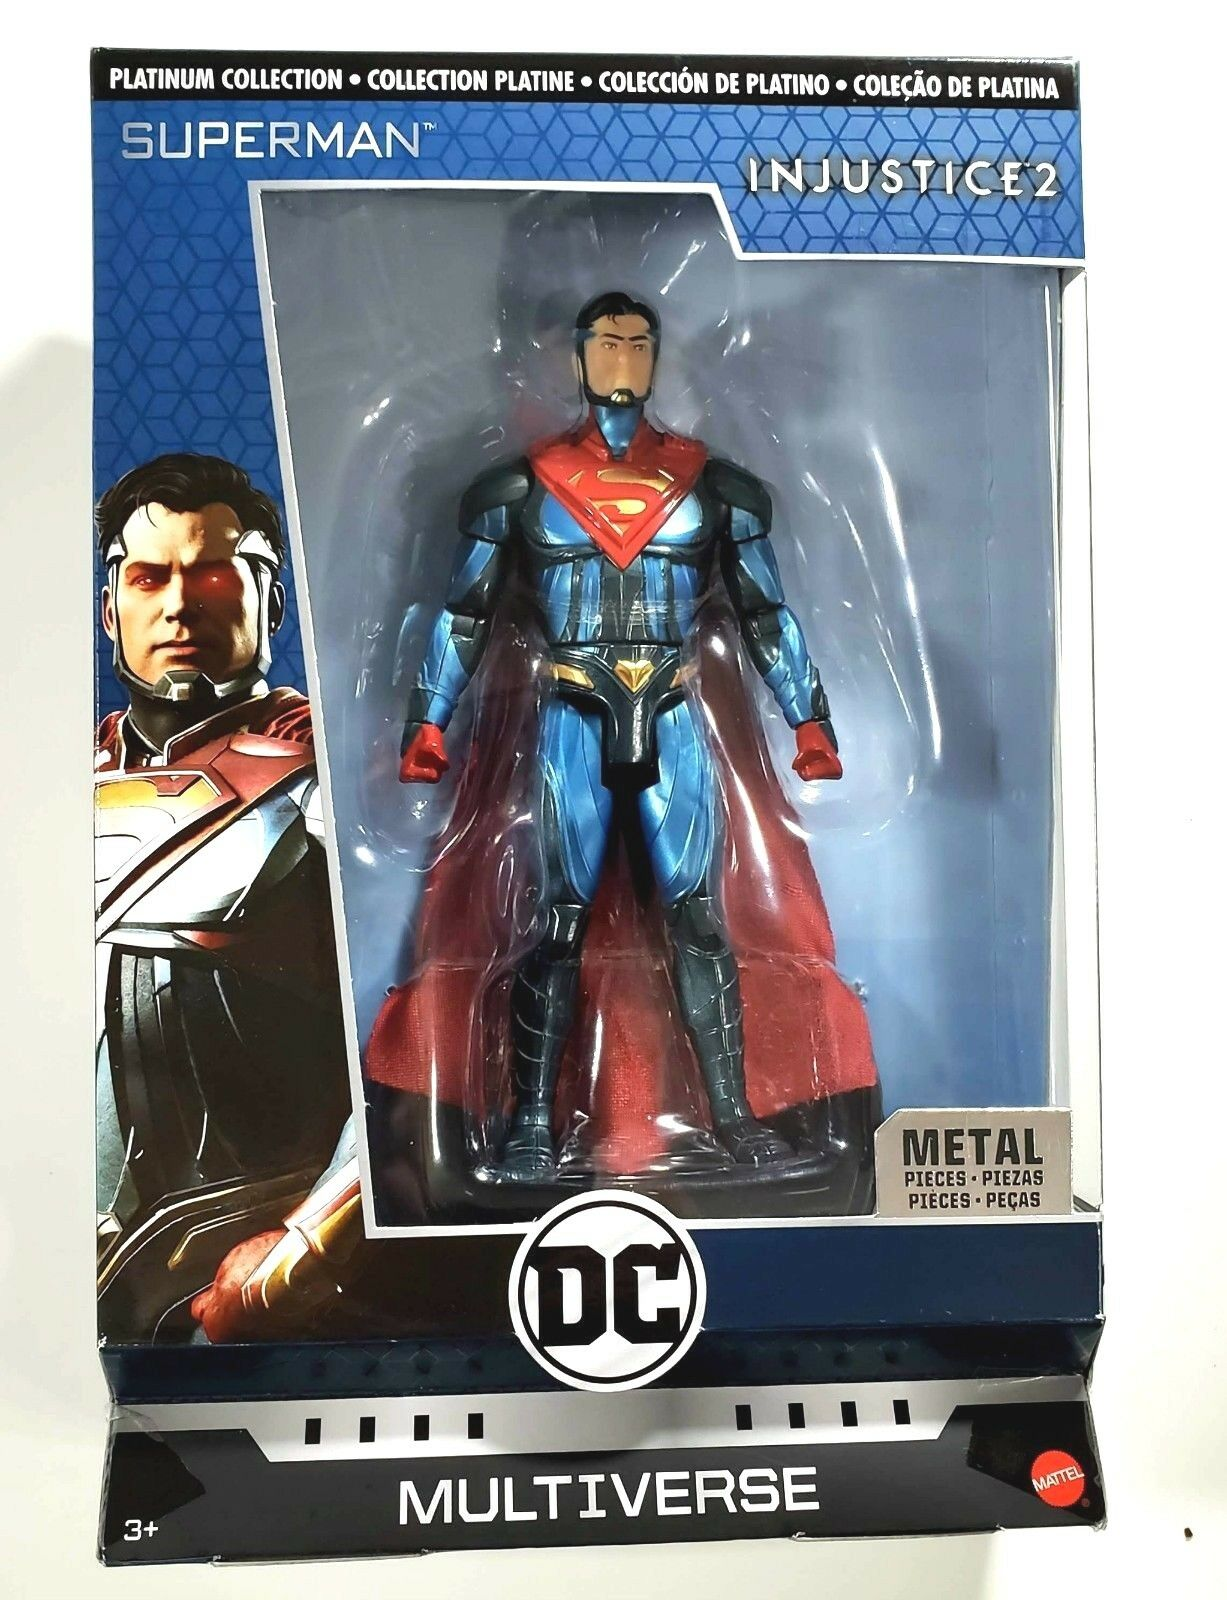 DC Multiverse Injustice 2 Superman Action Figure with Stand Platinum Collection